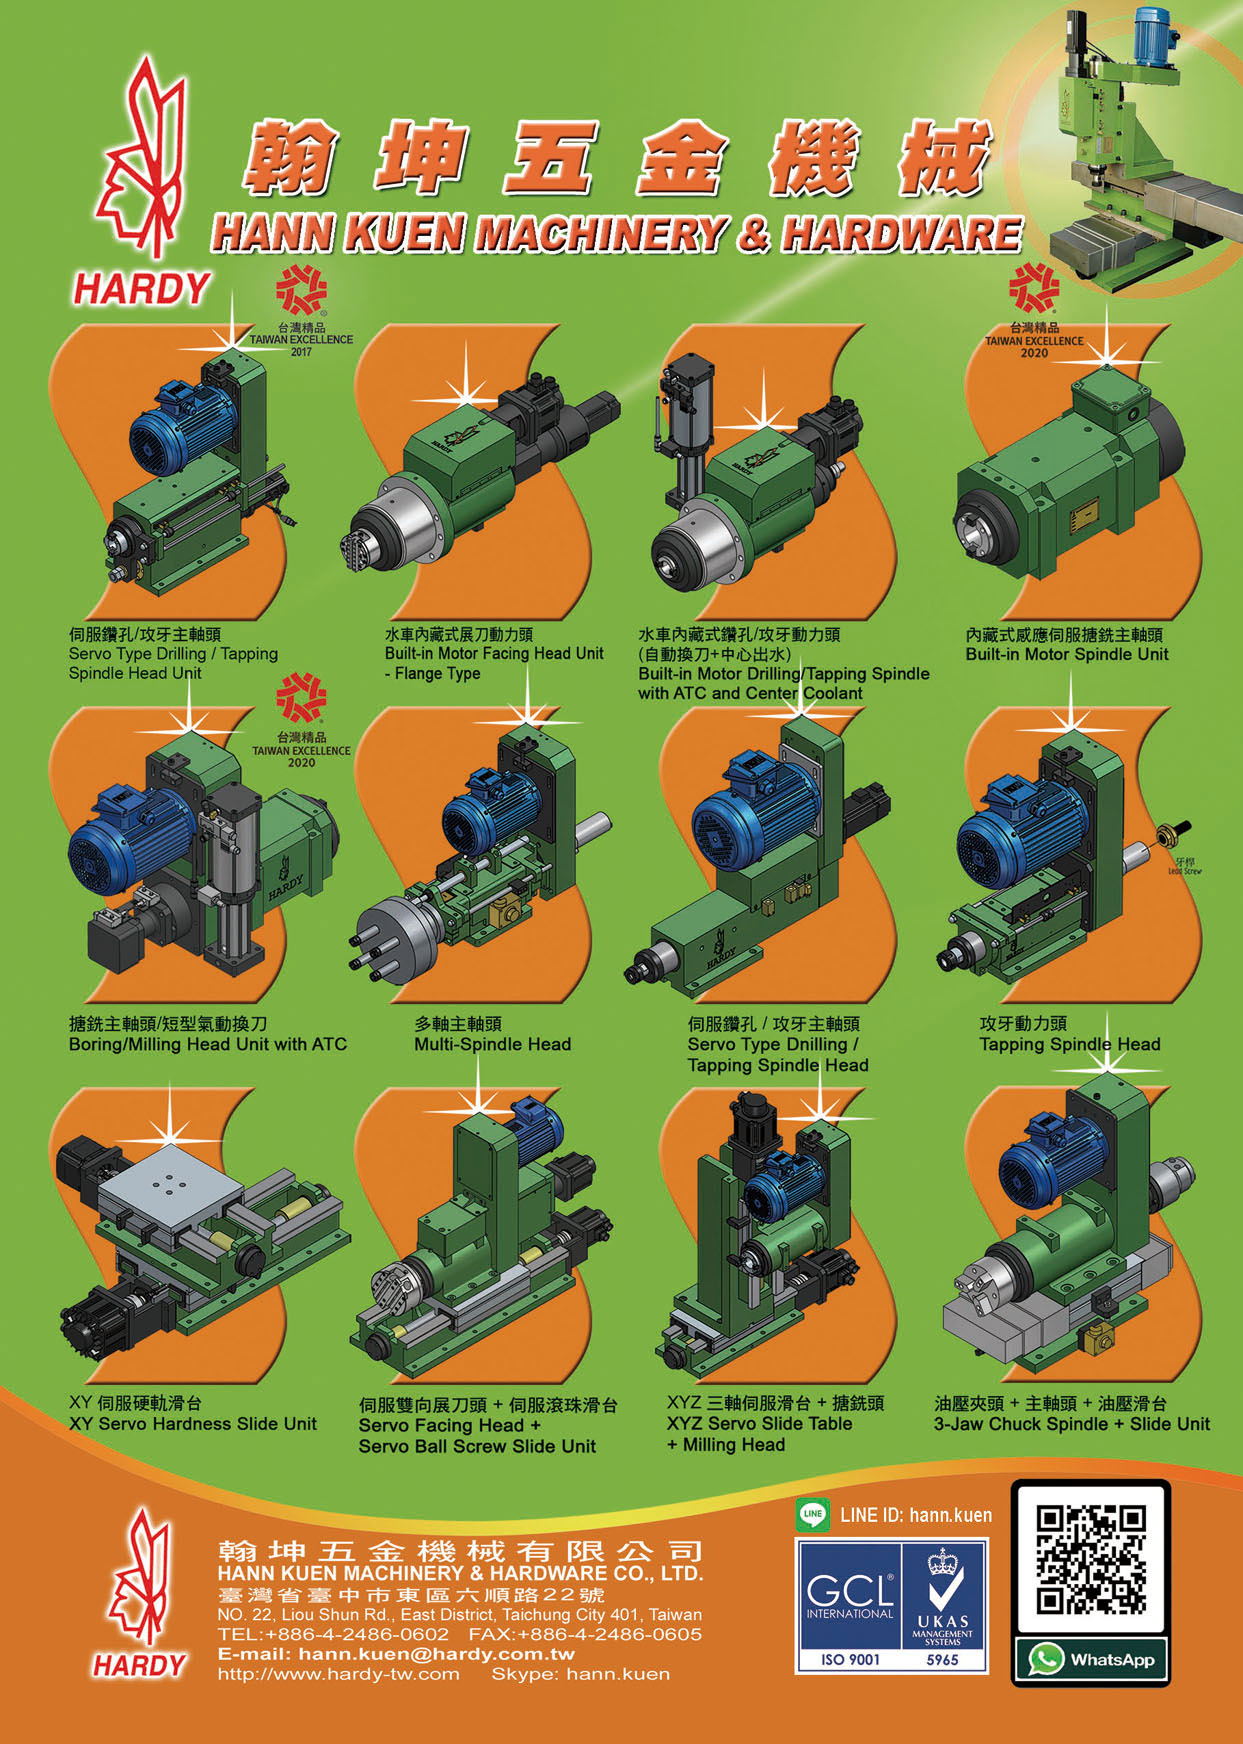 Middle East & Central Asia Special HANN KUEN MACHINERY & HARDWARE CO., LTD.